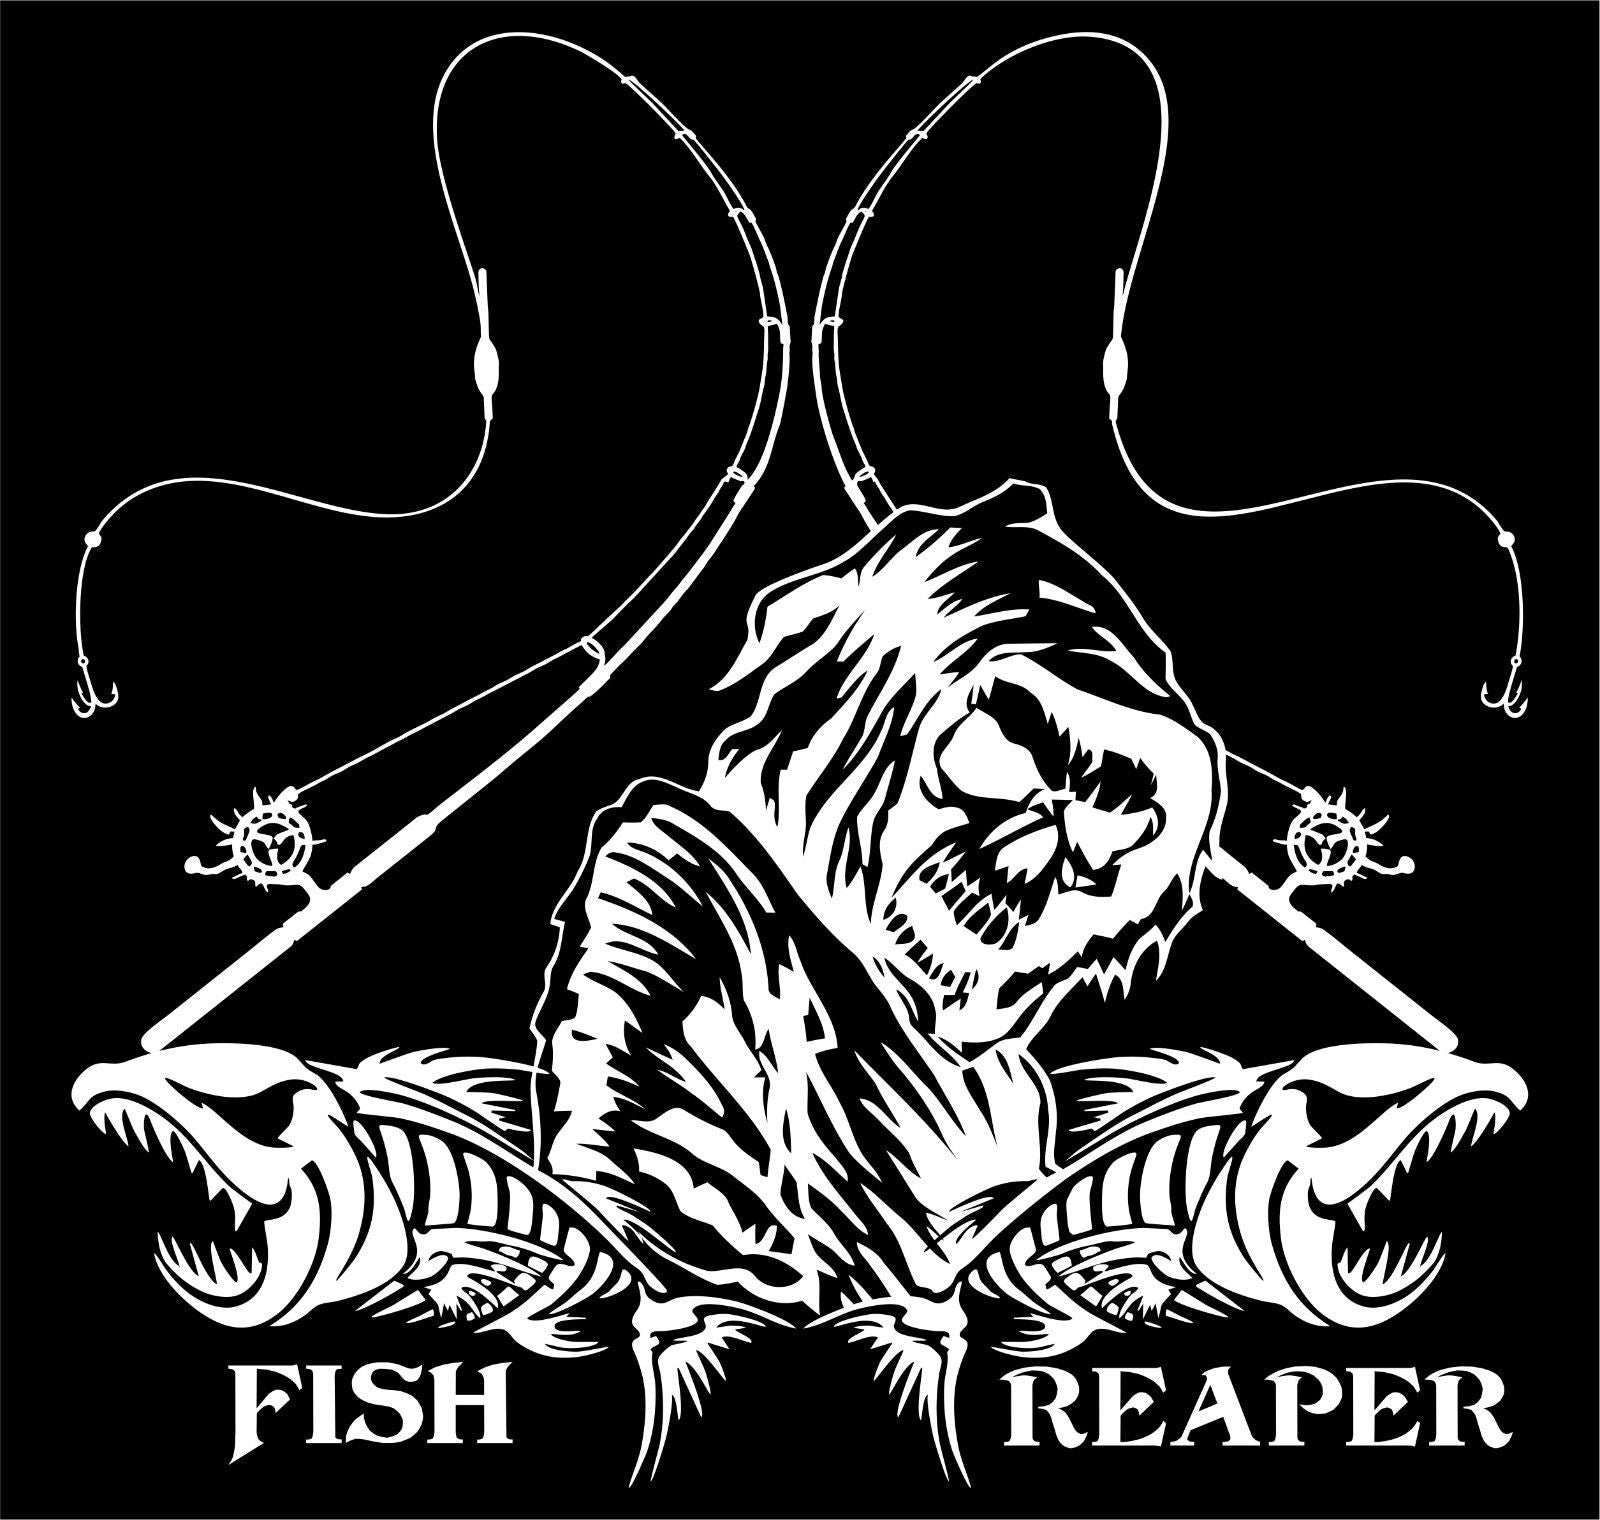 "Fishing Fish Grim Reaper Pole Skull Car Truck Window Vinyl Decal Sticker - 10"" Long Edge"